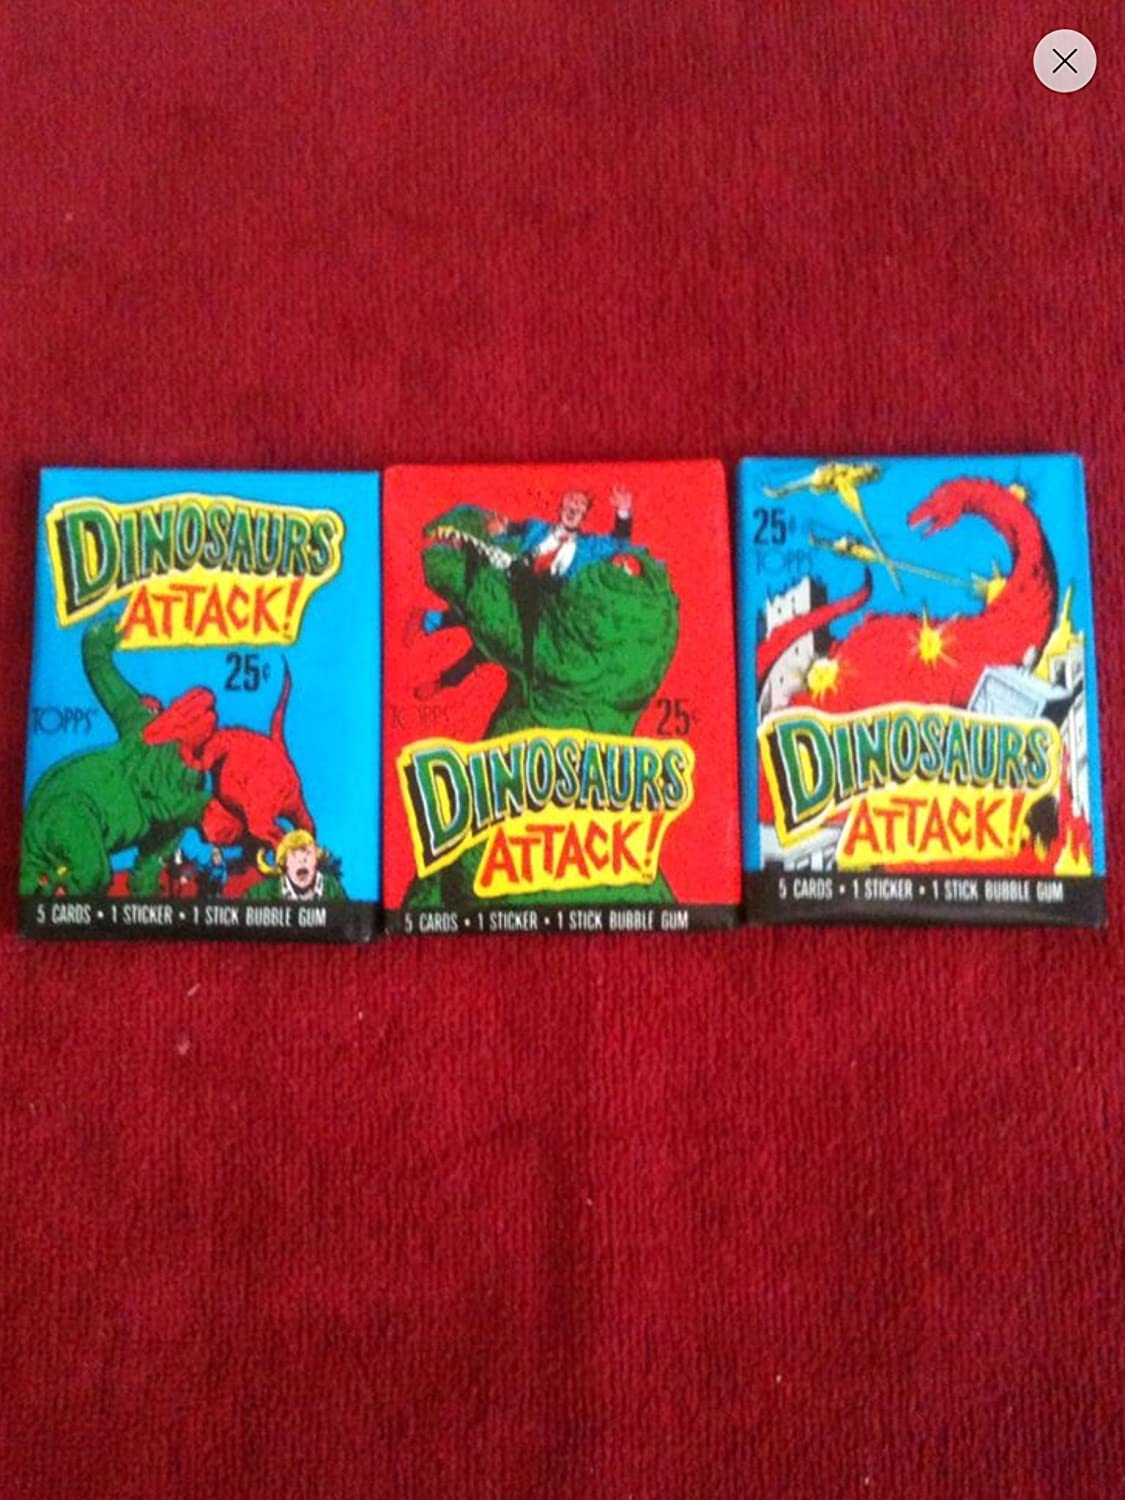 Dinosaurs Attack 1988 Vintage Trading Cards (3) Unopened Packs Topps Non--sport